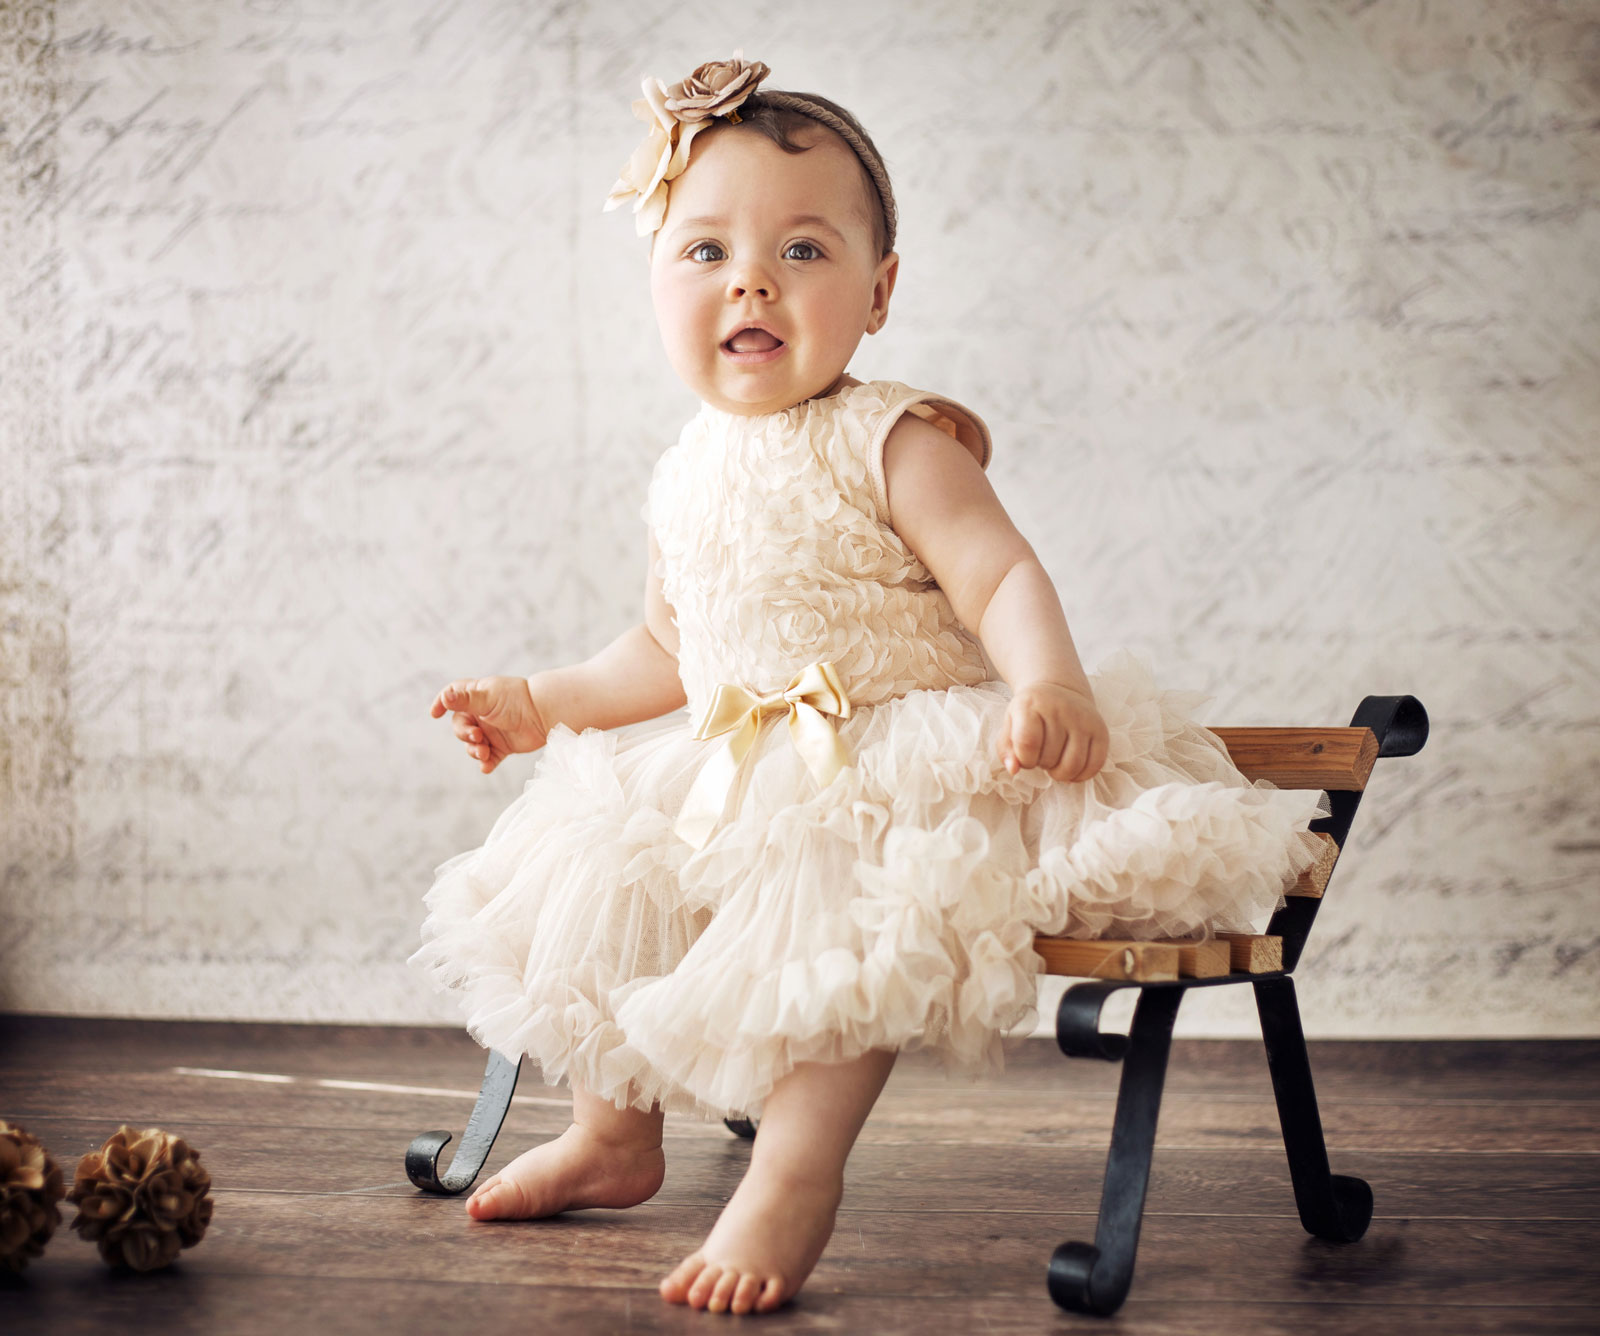 Baby Girl Sitting | The Top 5 Eco-Friendly Baby Clothes Brands